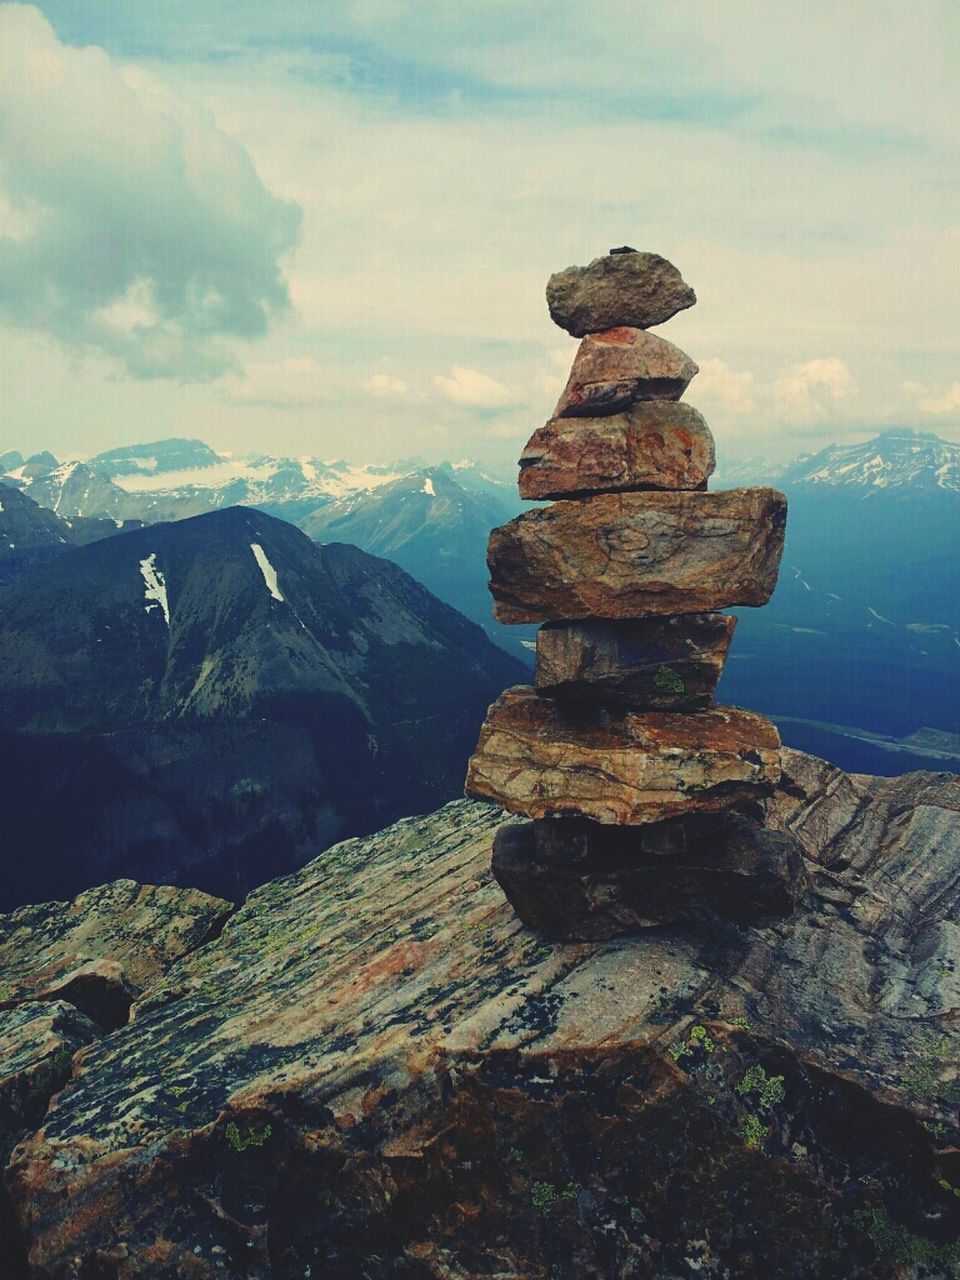 stack, rock, cloud - sky, sky, solid, balance, rock - object, mountain, tranquility, nature, stone - object, beauty in nature, scenics - nature, zen-like, tranquil scene, no people, day, stone, land, outdoors, pebble, mountain peak